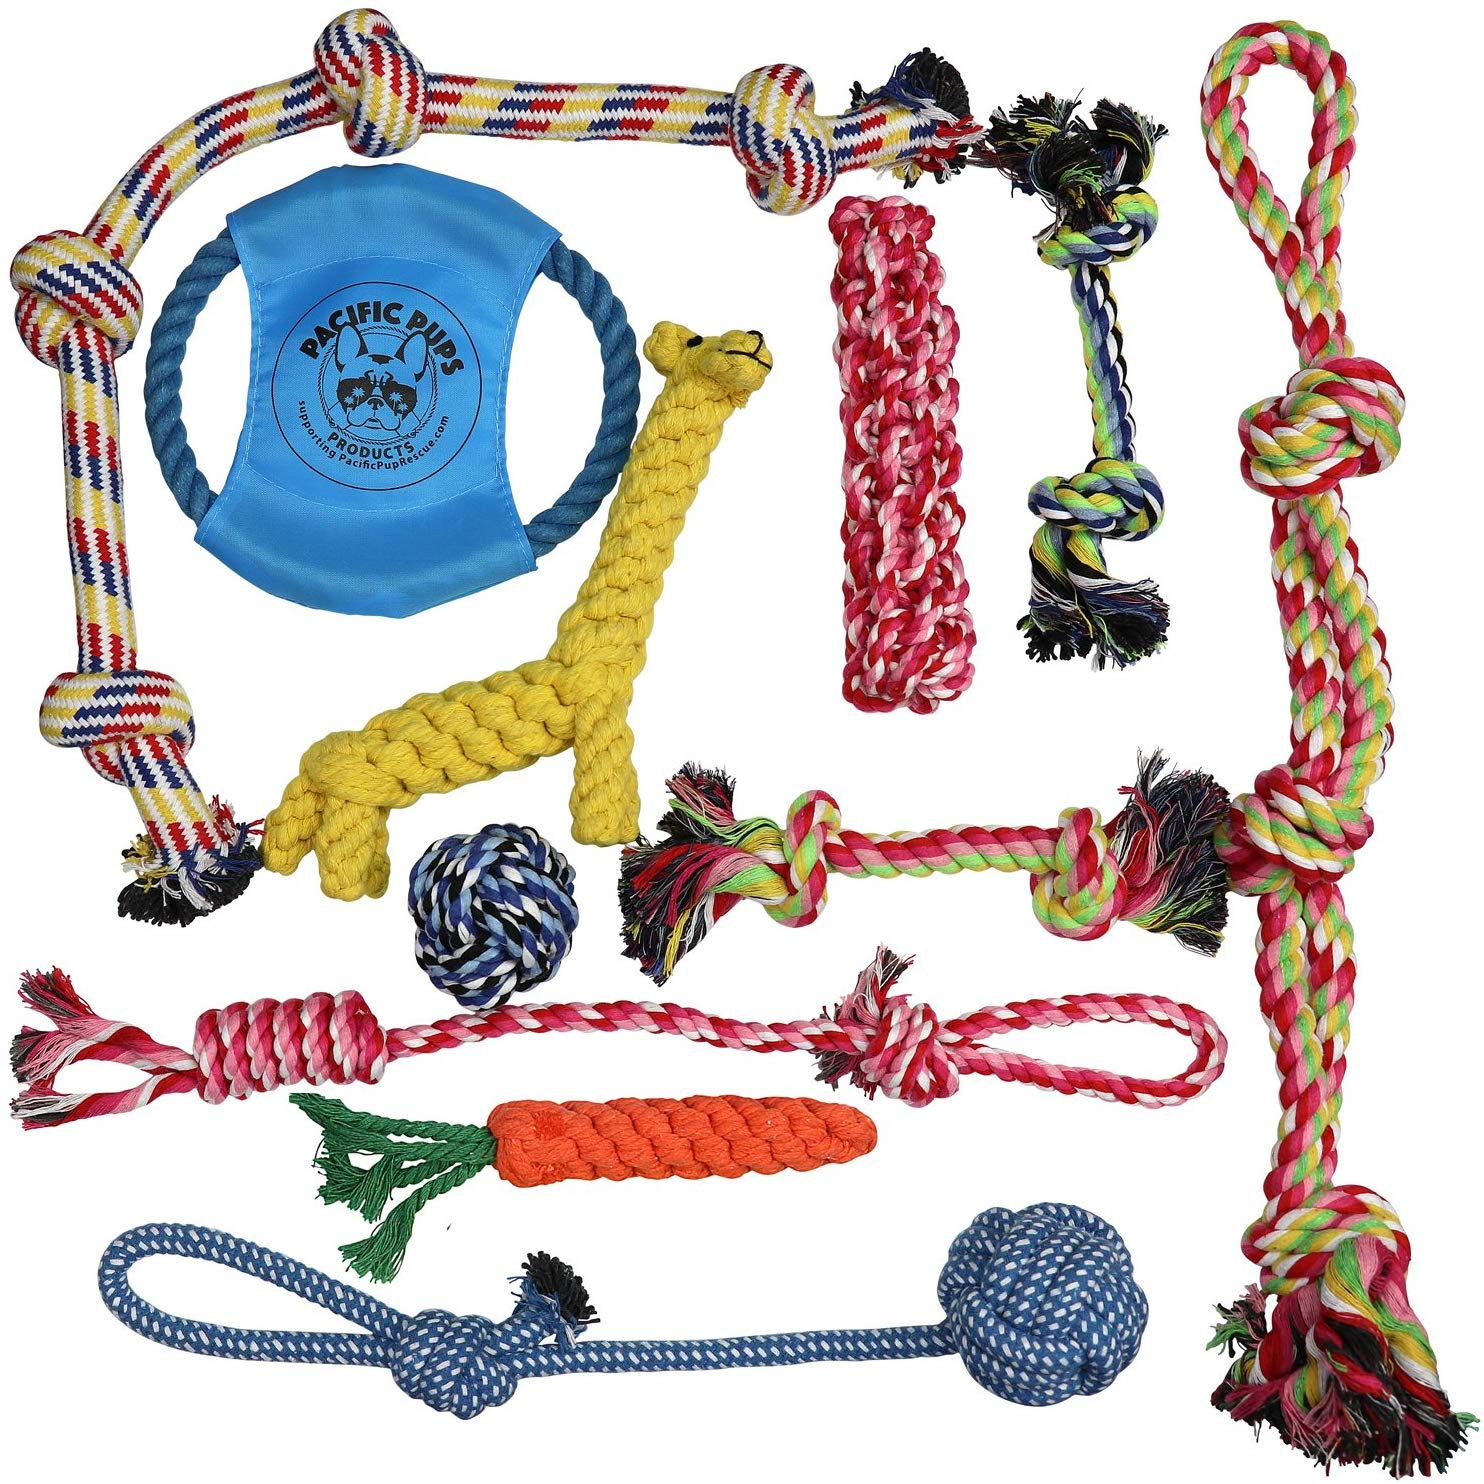 Pacific Pups Products supporting pacificpuprescue.com Dog Rope Toys for  Aggressive Chewers.